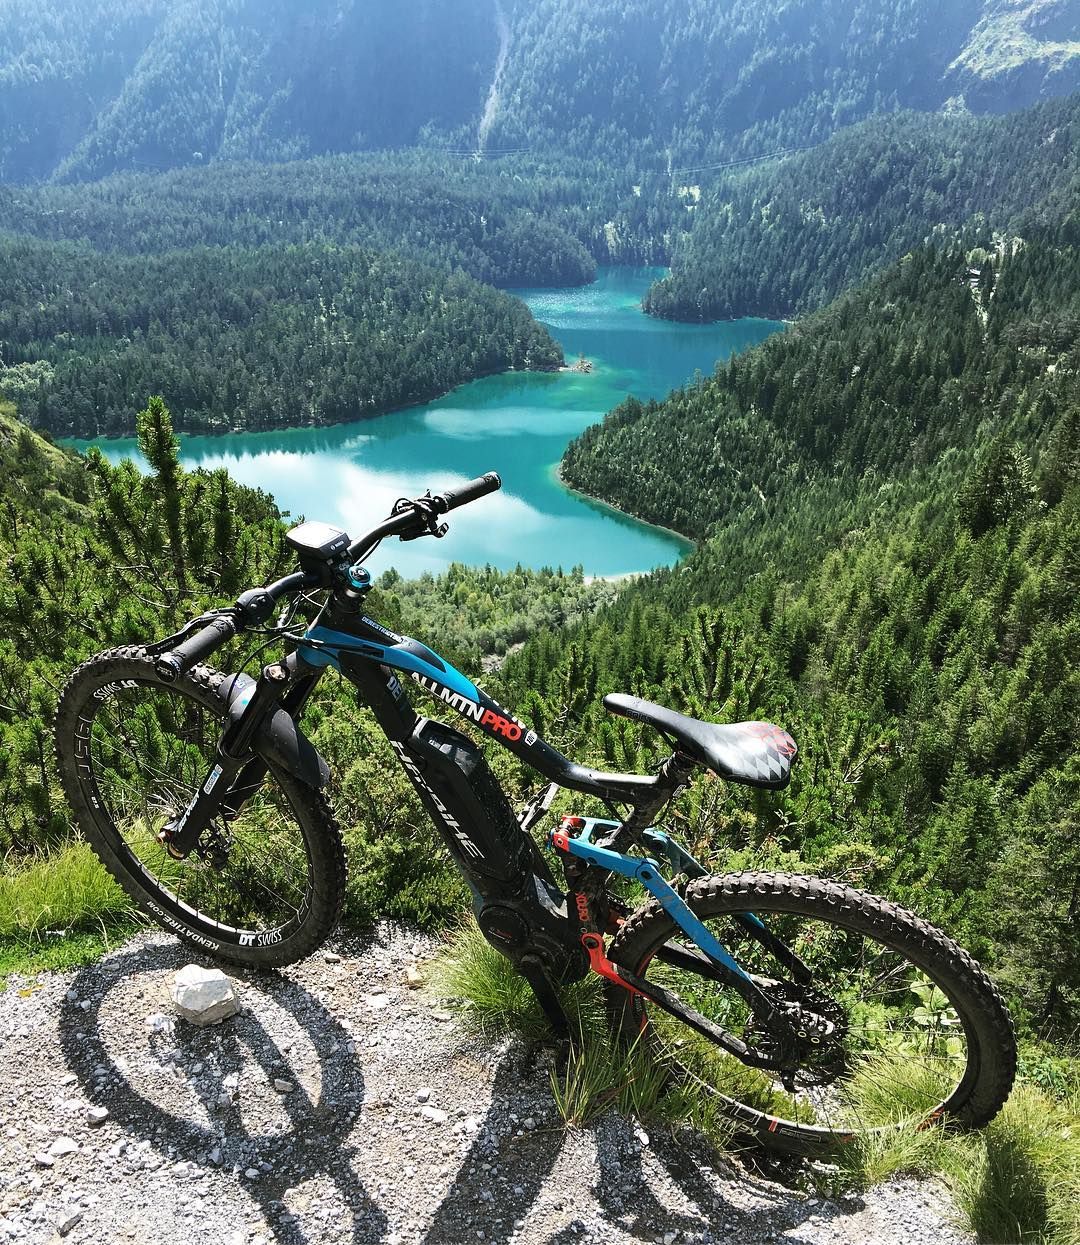 We hope your Haibike led you to some places as superb as this during the weekend! 📷 @hdc_m #XDURO #eMTB #mtb #Haibike